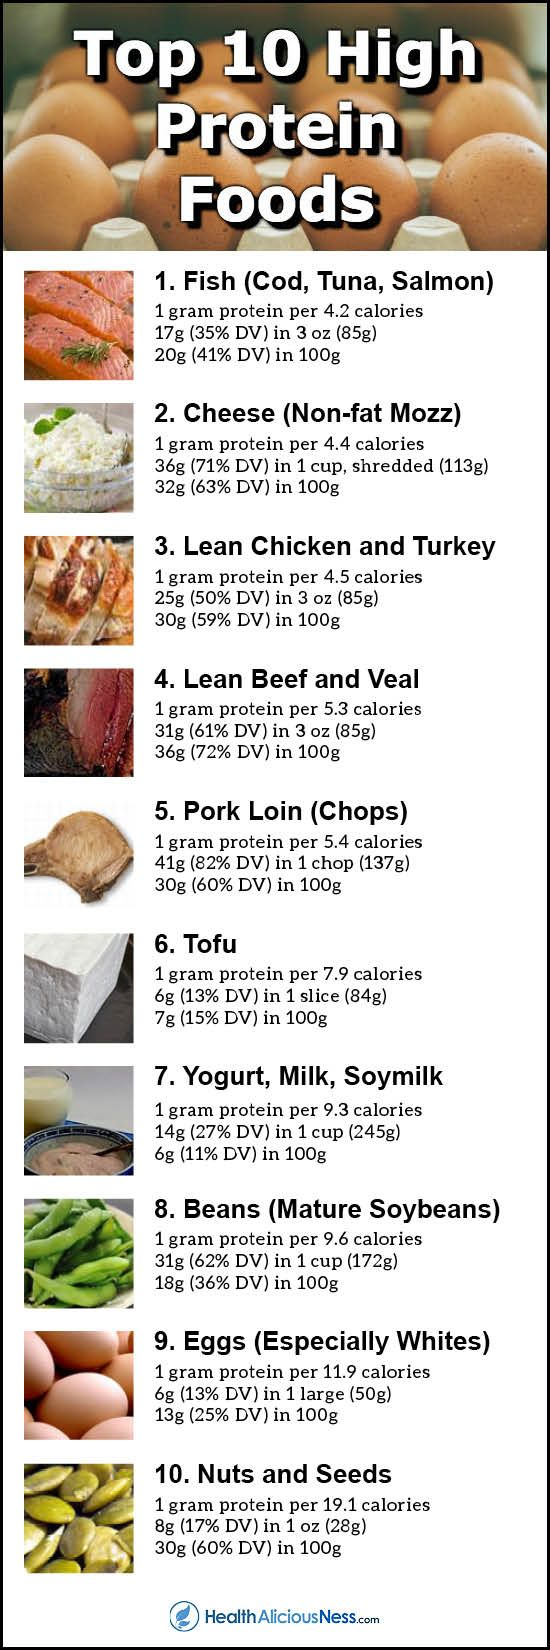 Top 10 Foods Highest in Protein Per Calorie